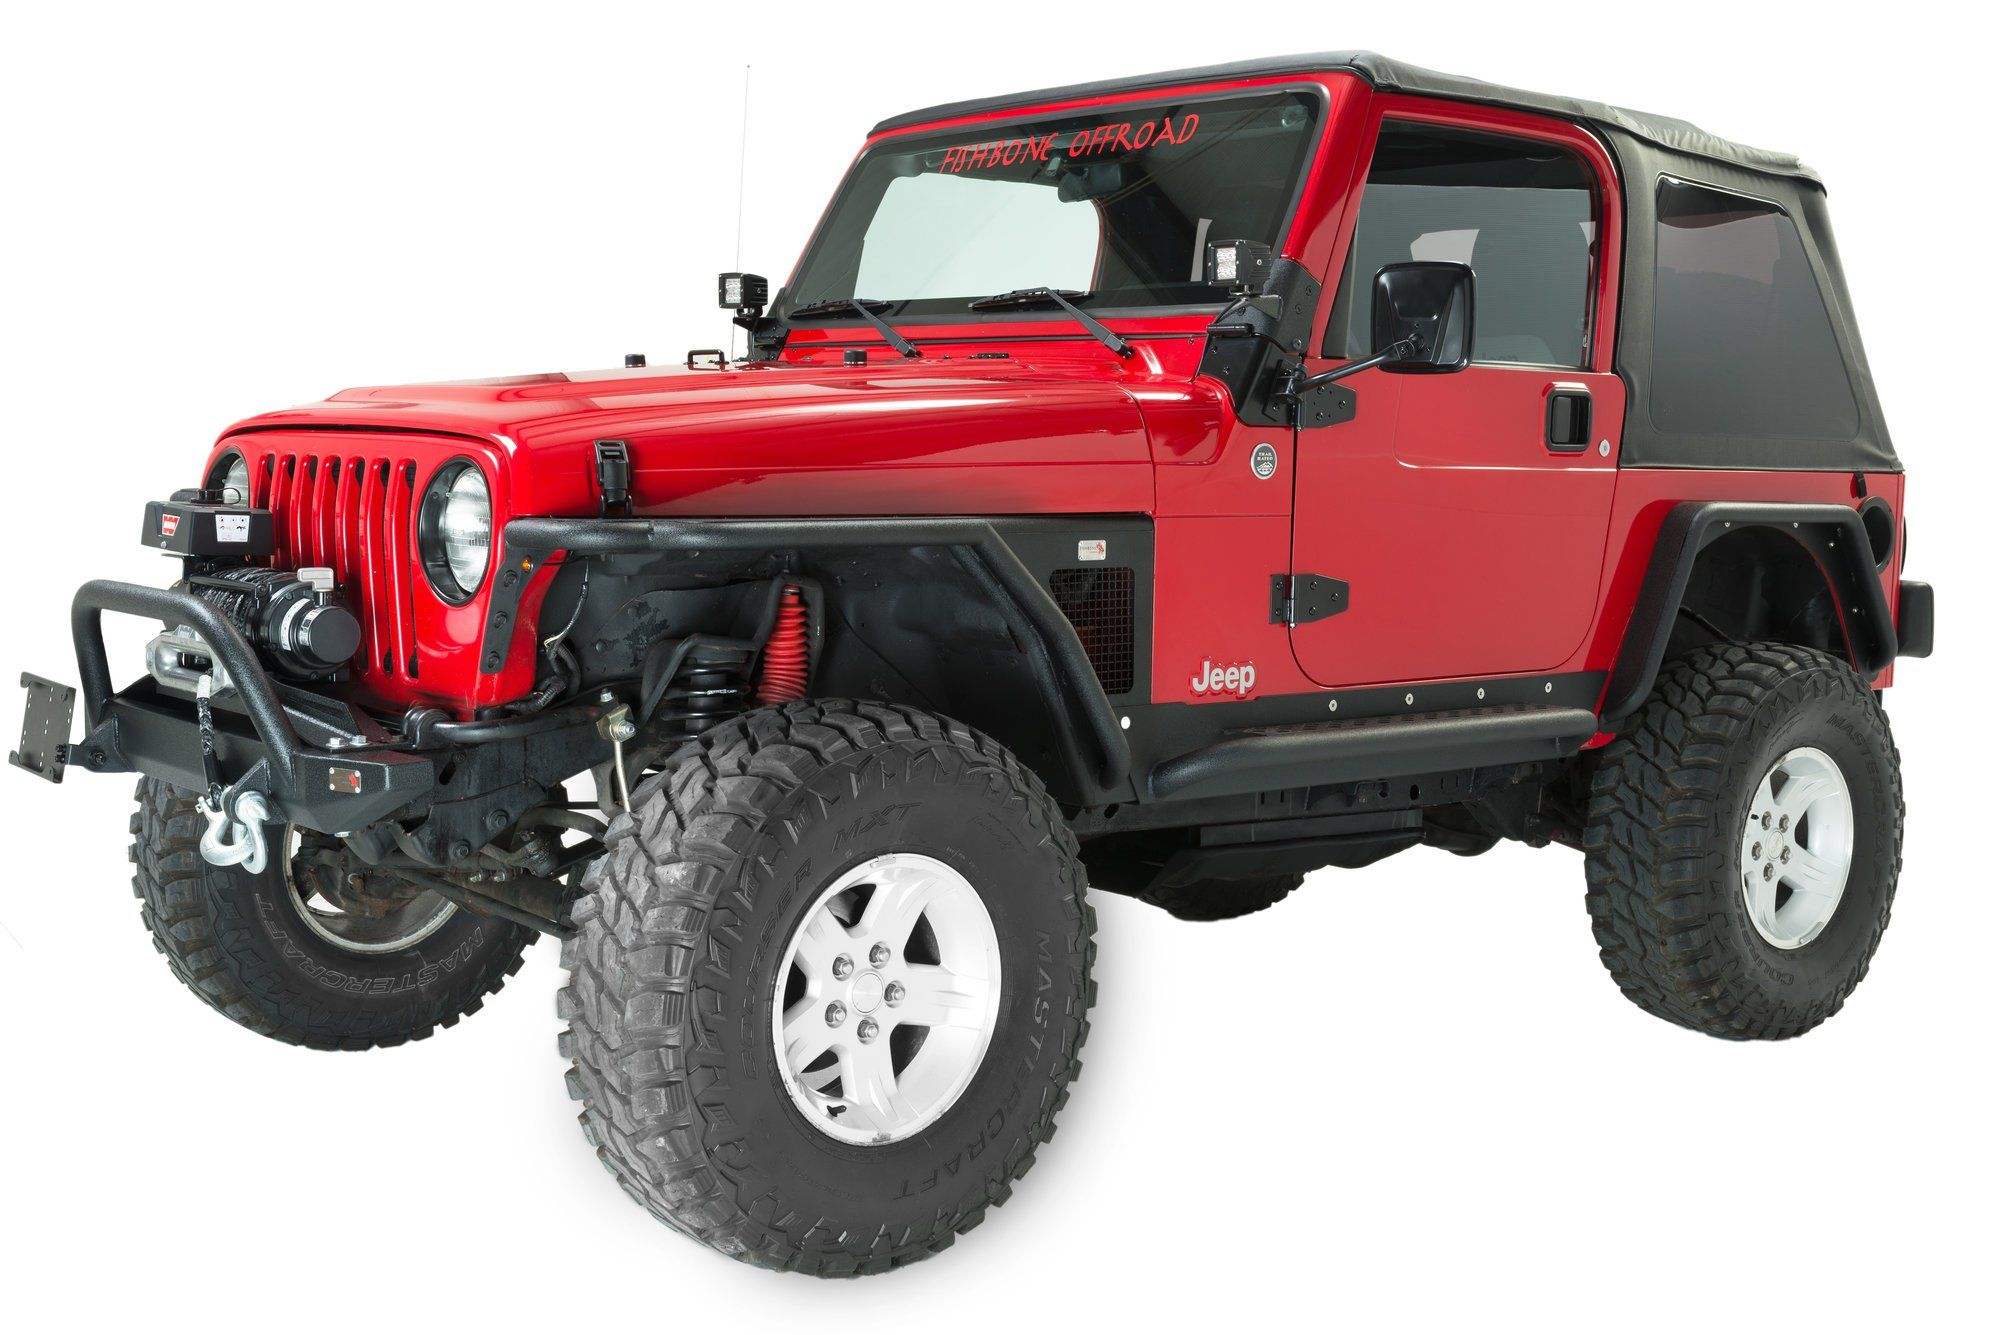 Fishbone Offroad Tube Fenders For 97 06 Jeep Wrangler Tj Jeep Wrangler Tj Jeep Wrangler Diy Wrangler Tj